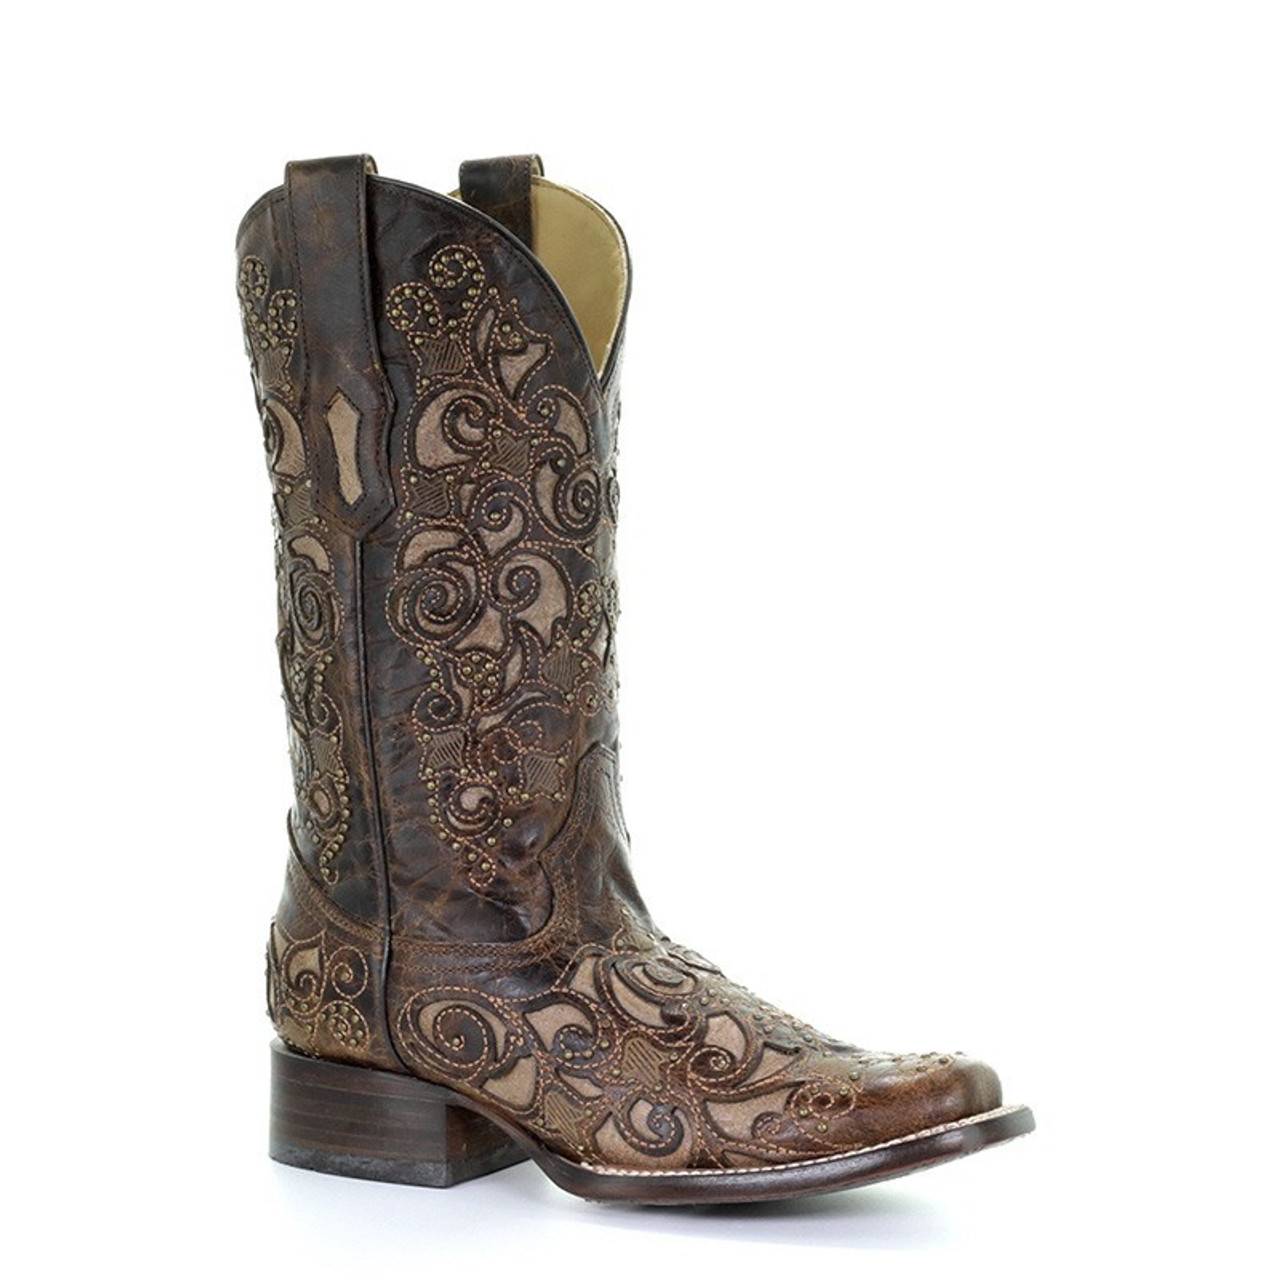 359fa22c343 Corral Womens Brown Studded Inlay Square Toe Cowgirl Boots A3326 ...